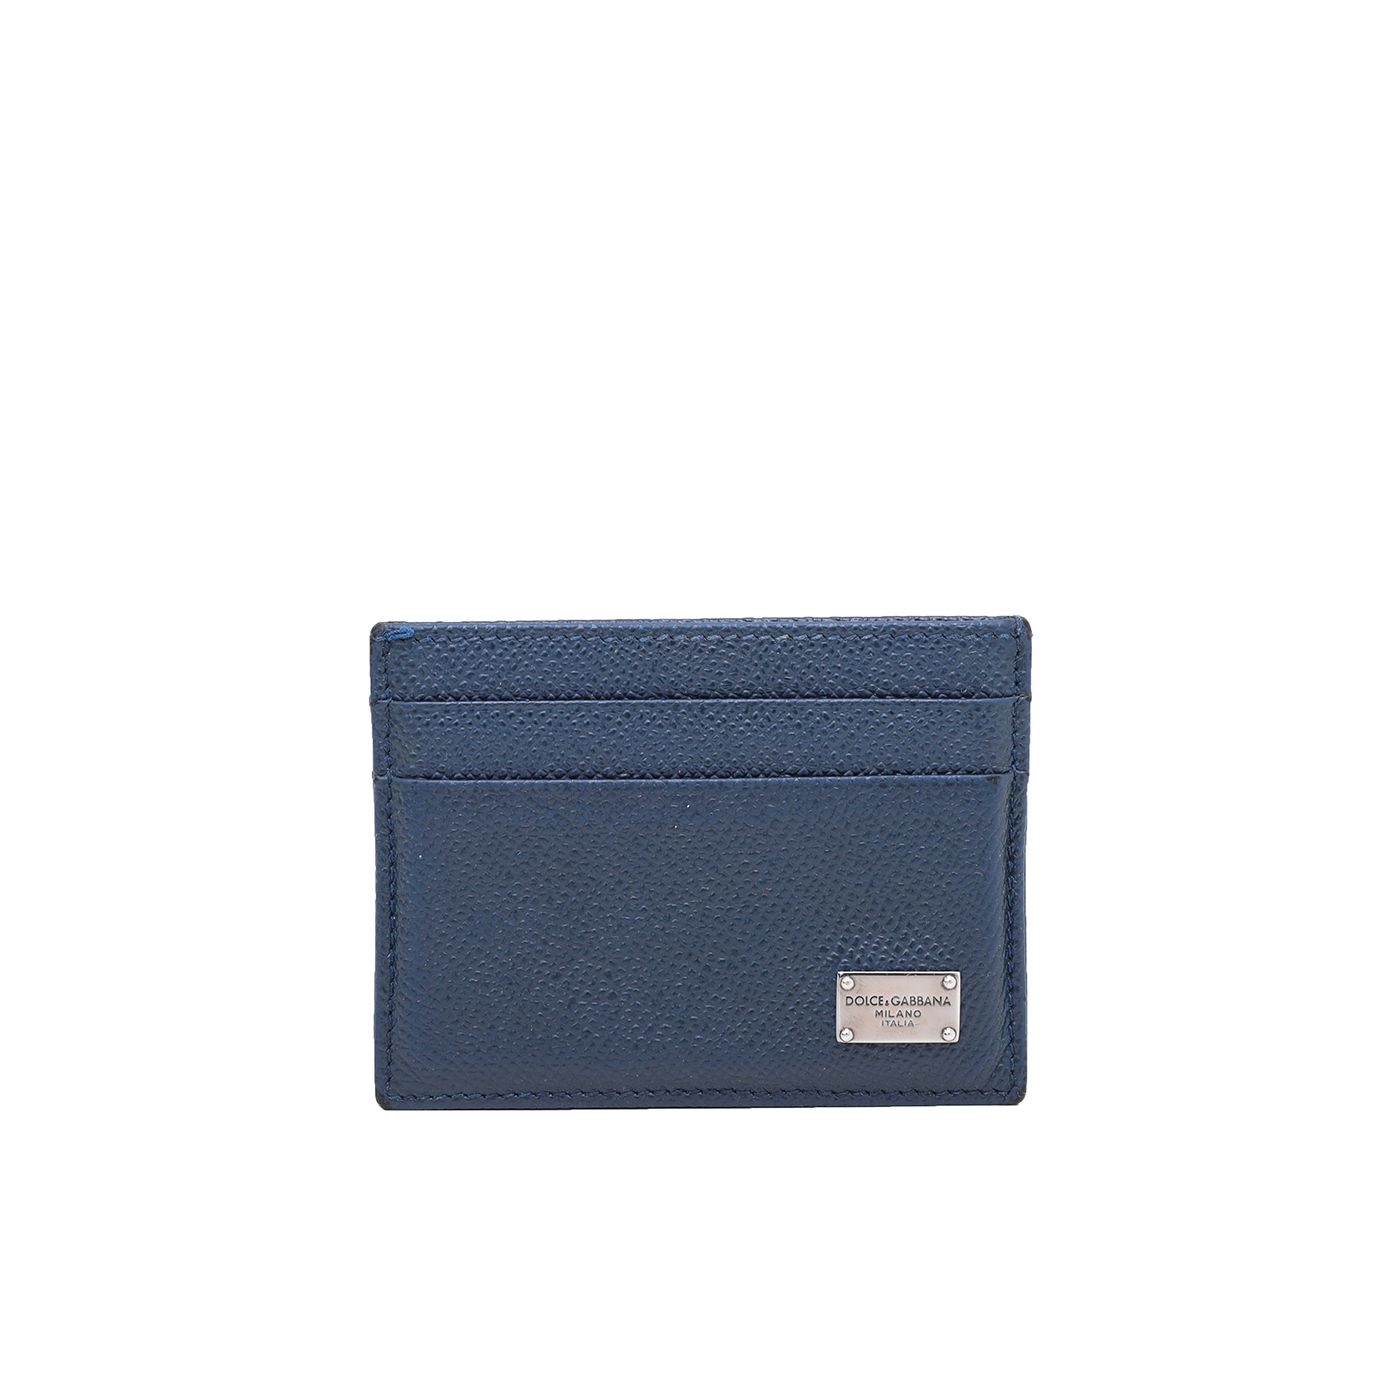 Dolce & Gabbana Blue Marine Dauphine Credit Card Holder